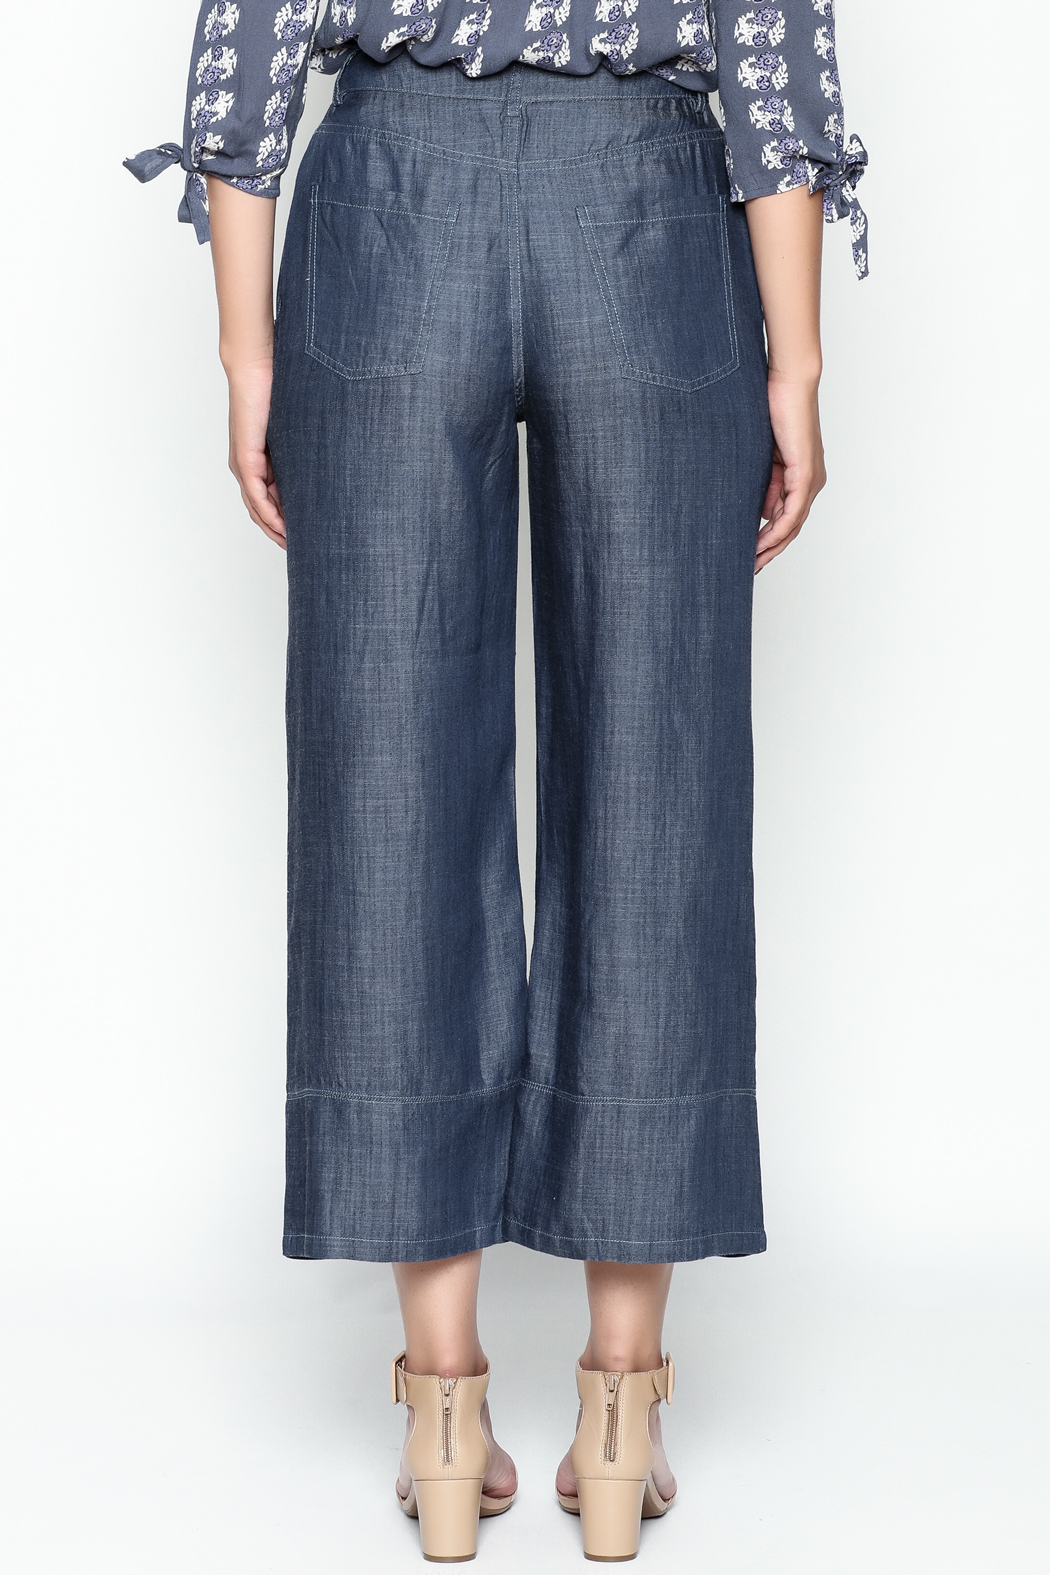 Current Air Tencel Culotte Pants - Back Cropped Image